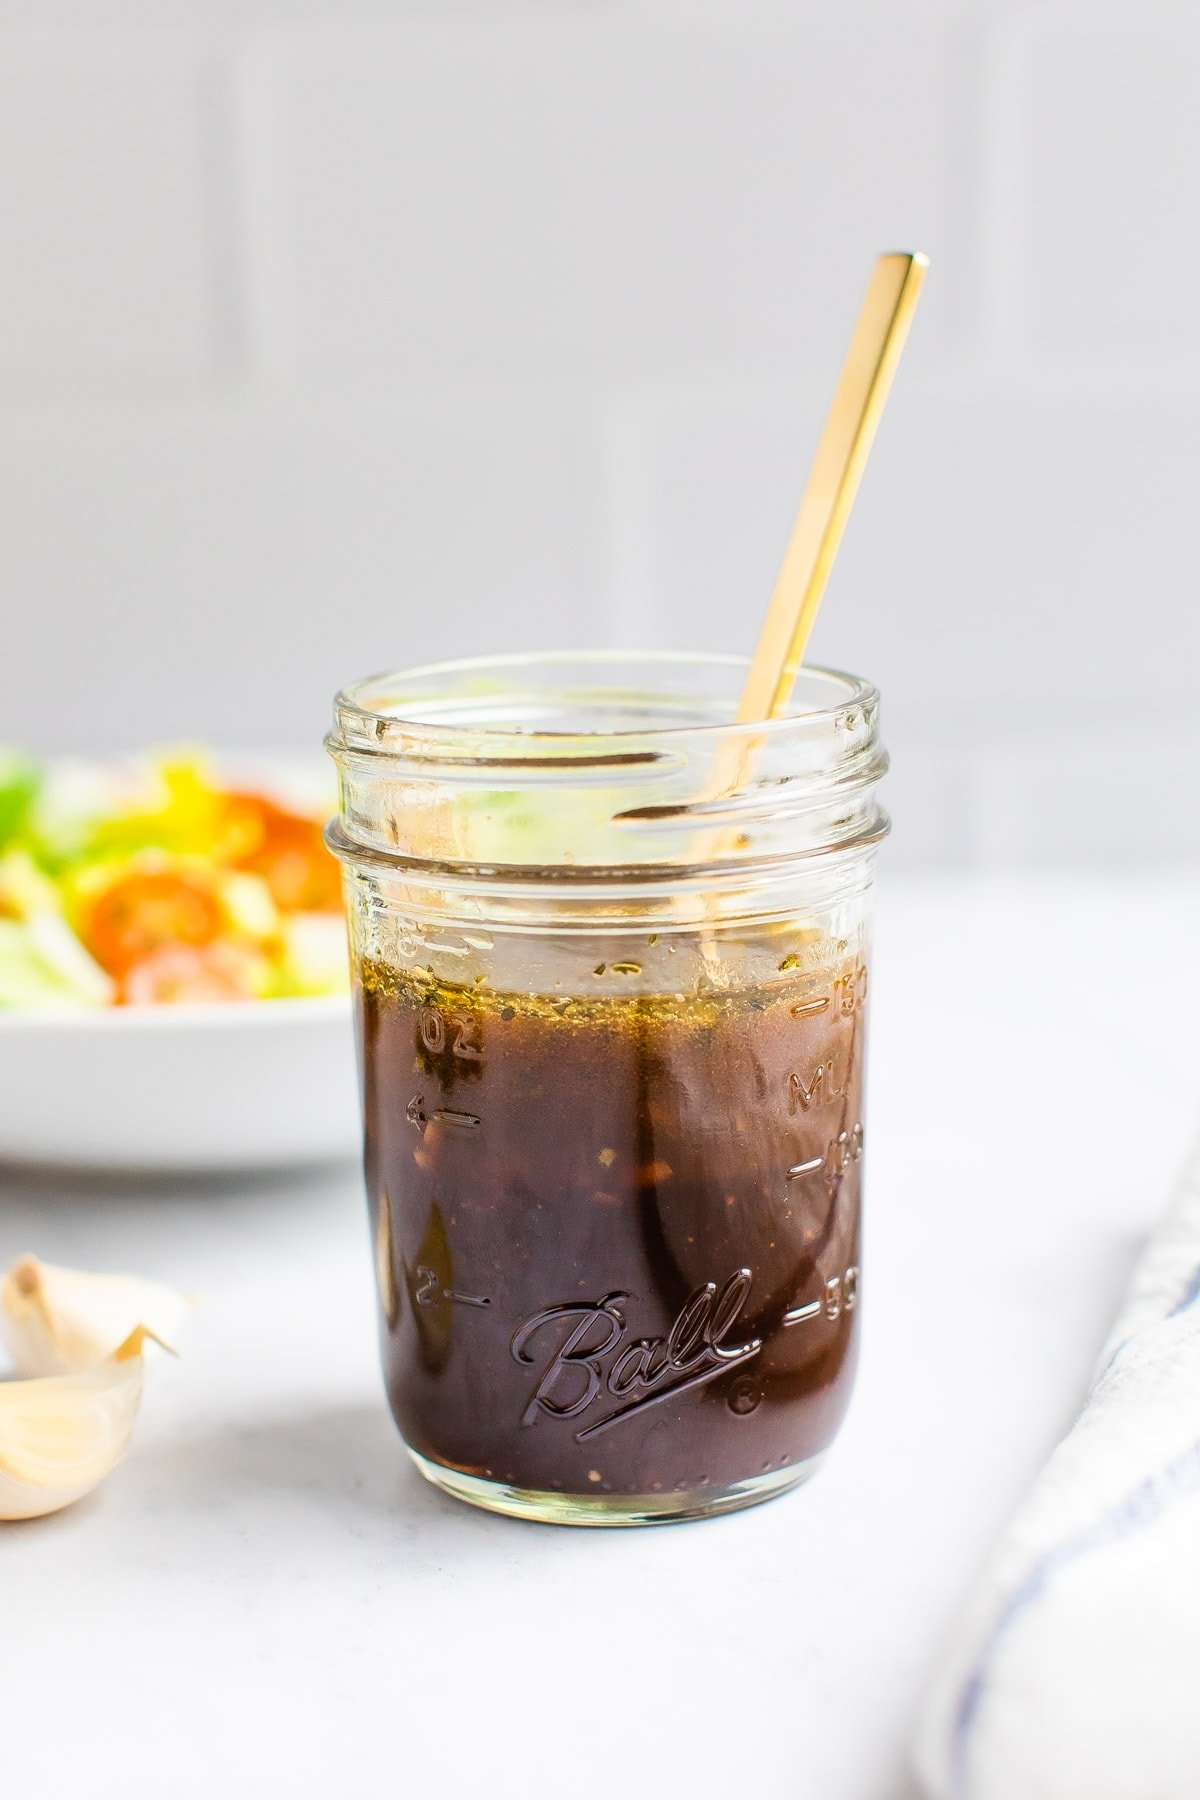 Mason jar with balsamic dressing and a spoon in the jar.